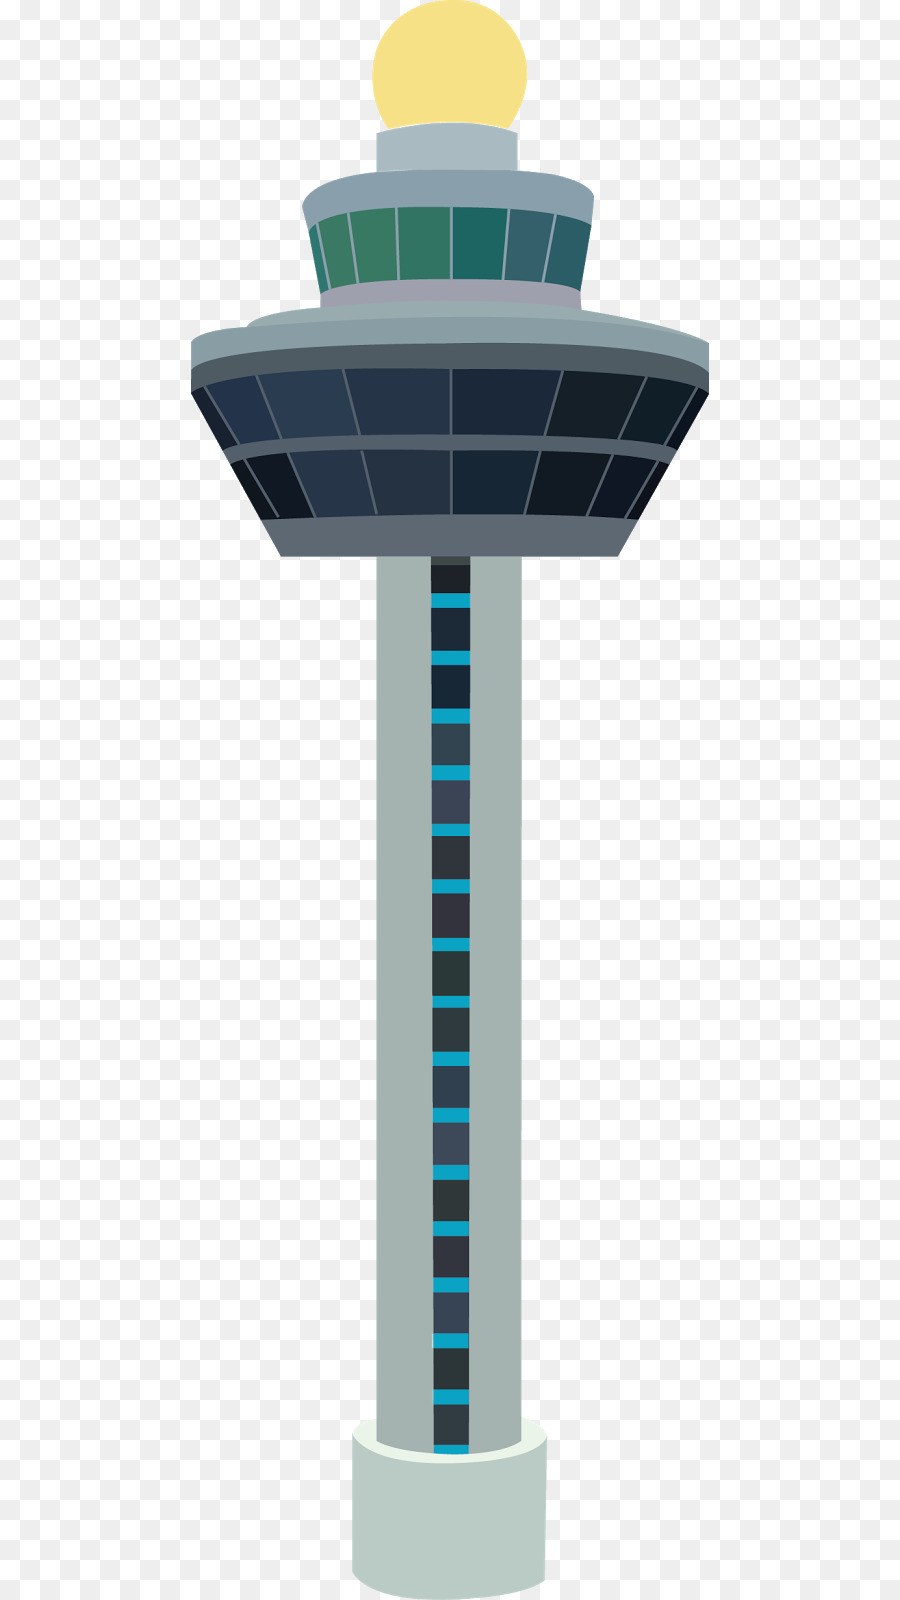 Tower clipart control. Salzburg airport air traffic